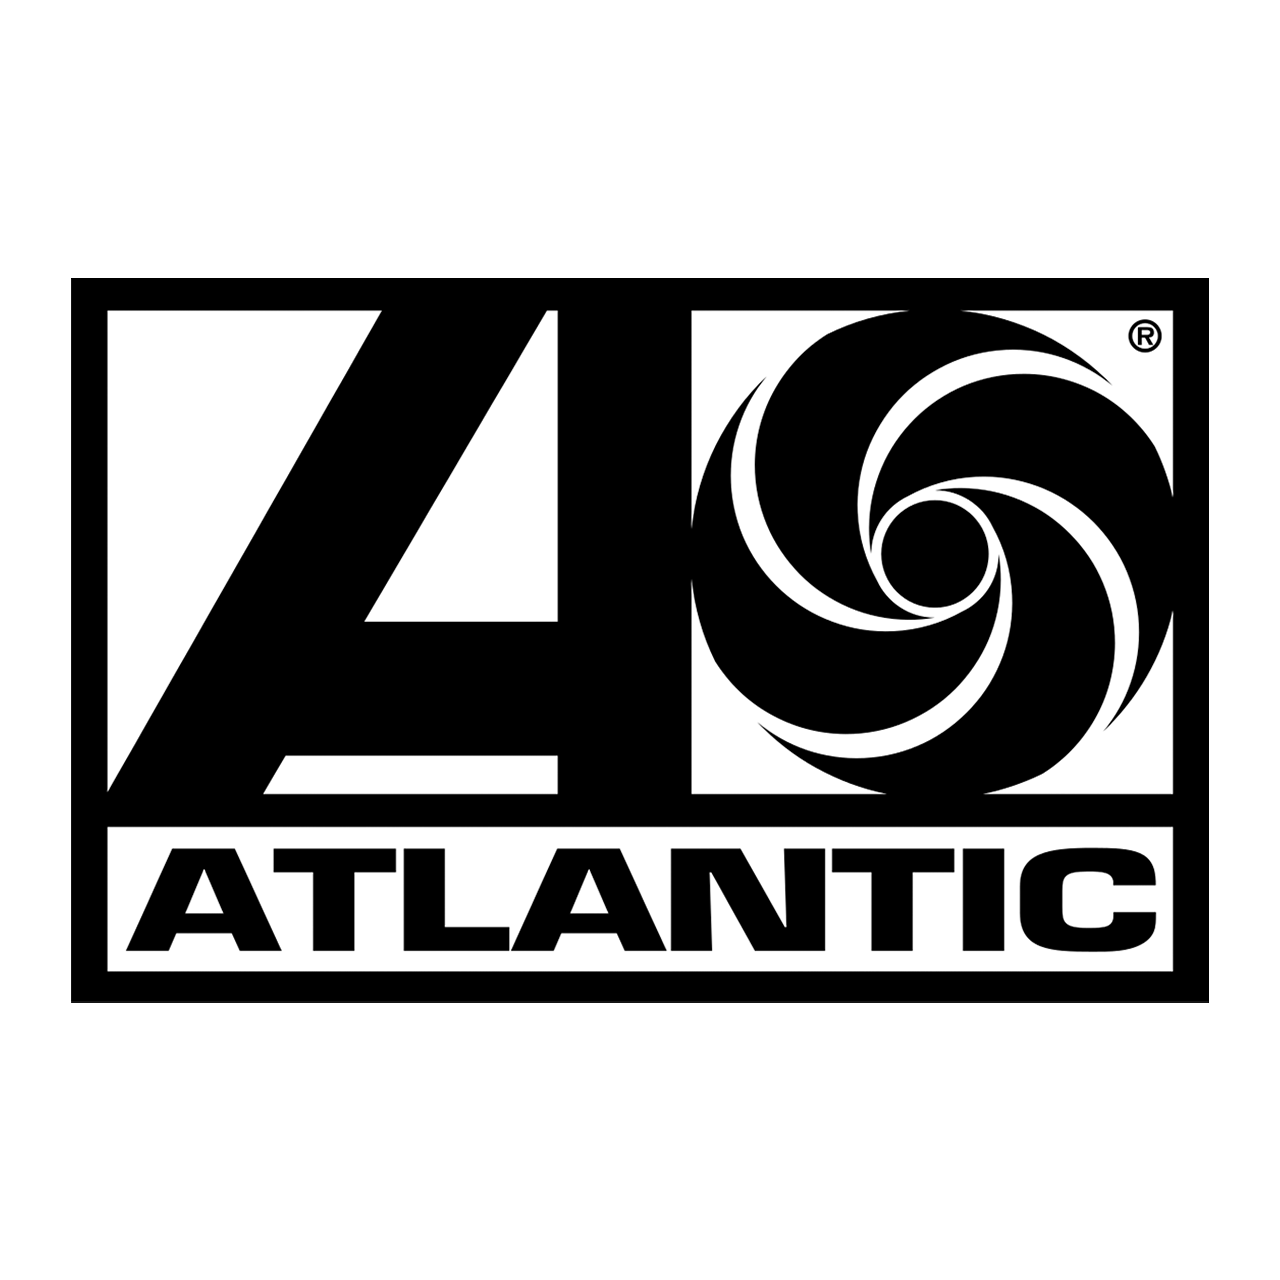 atlanticrecords-thumb